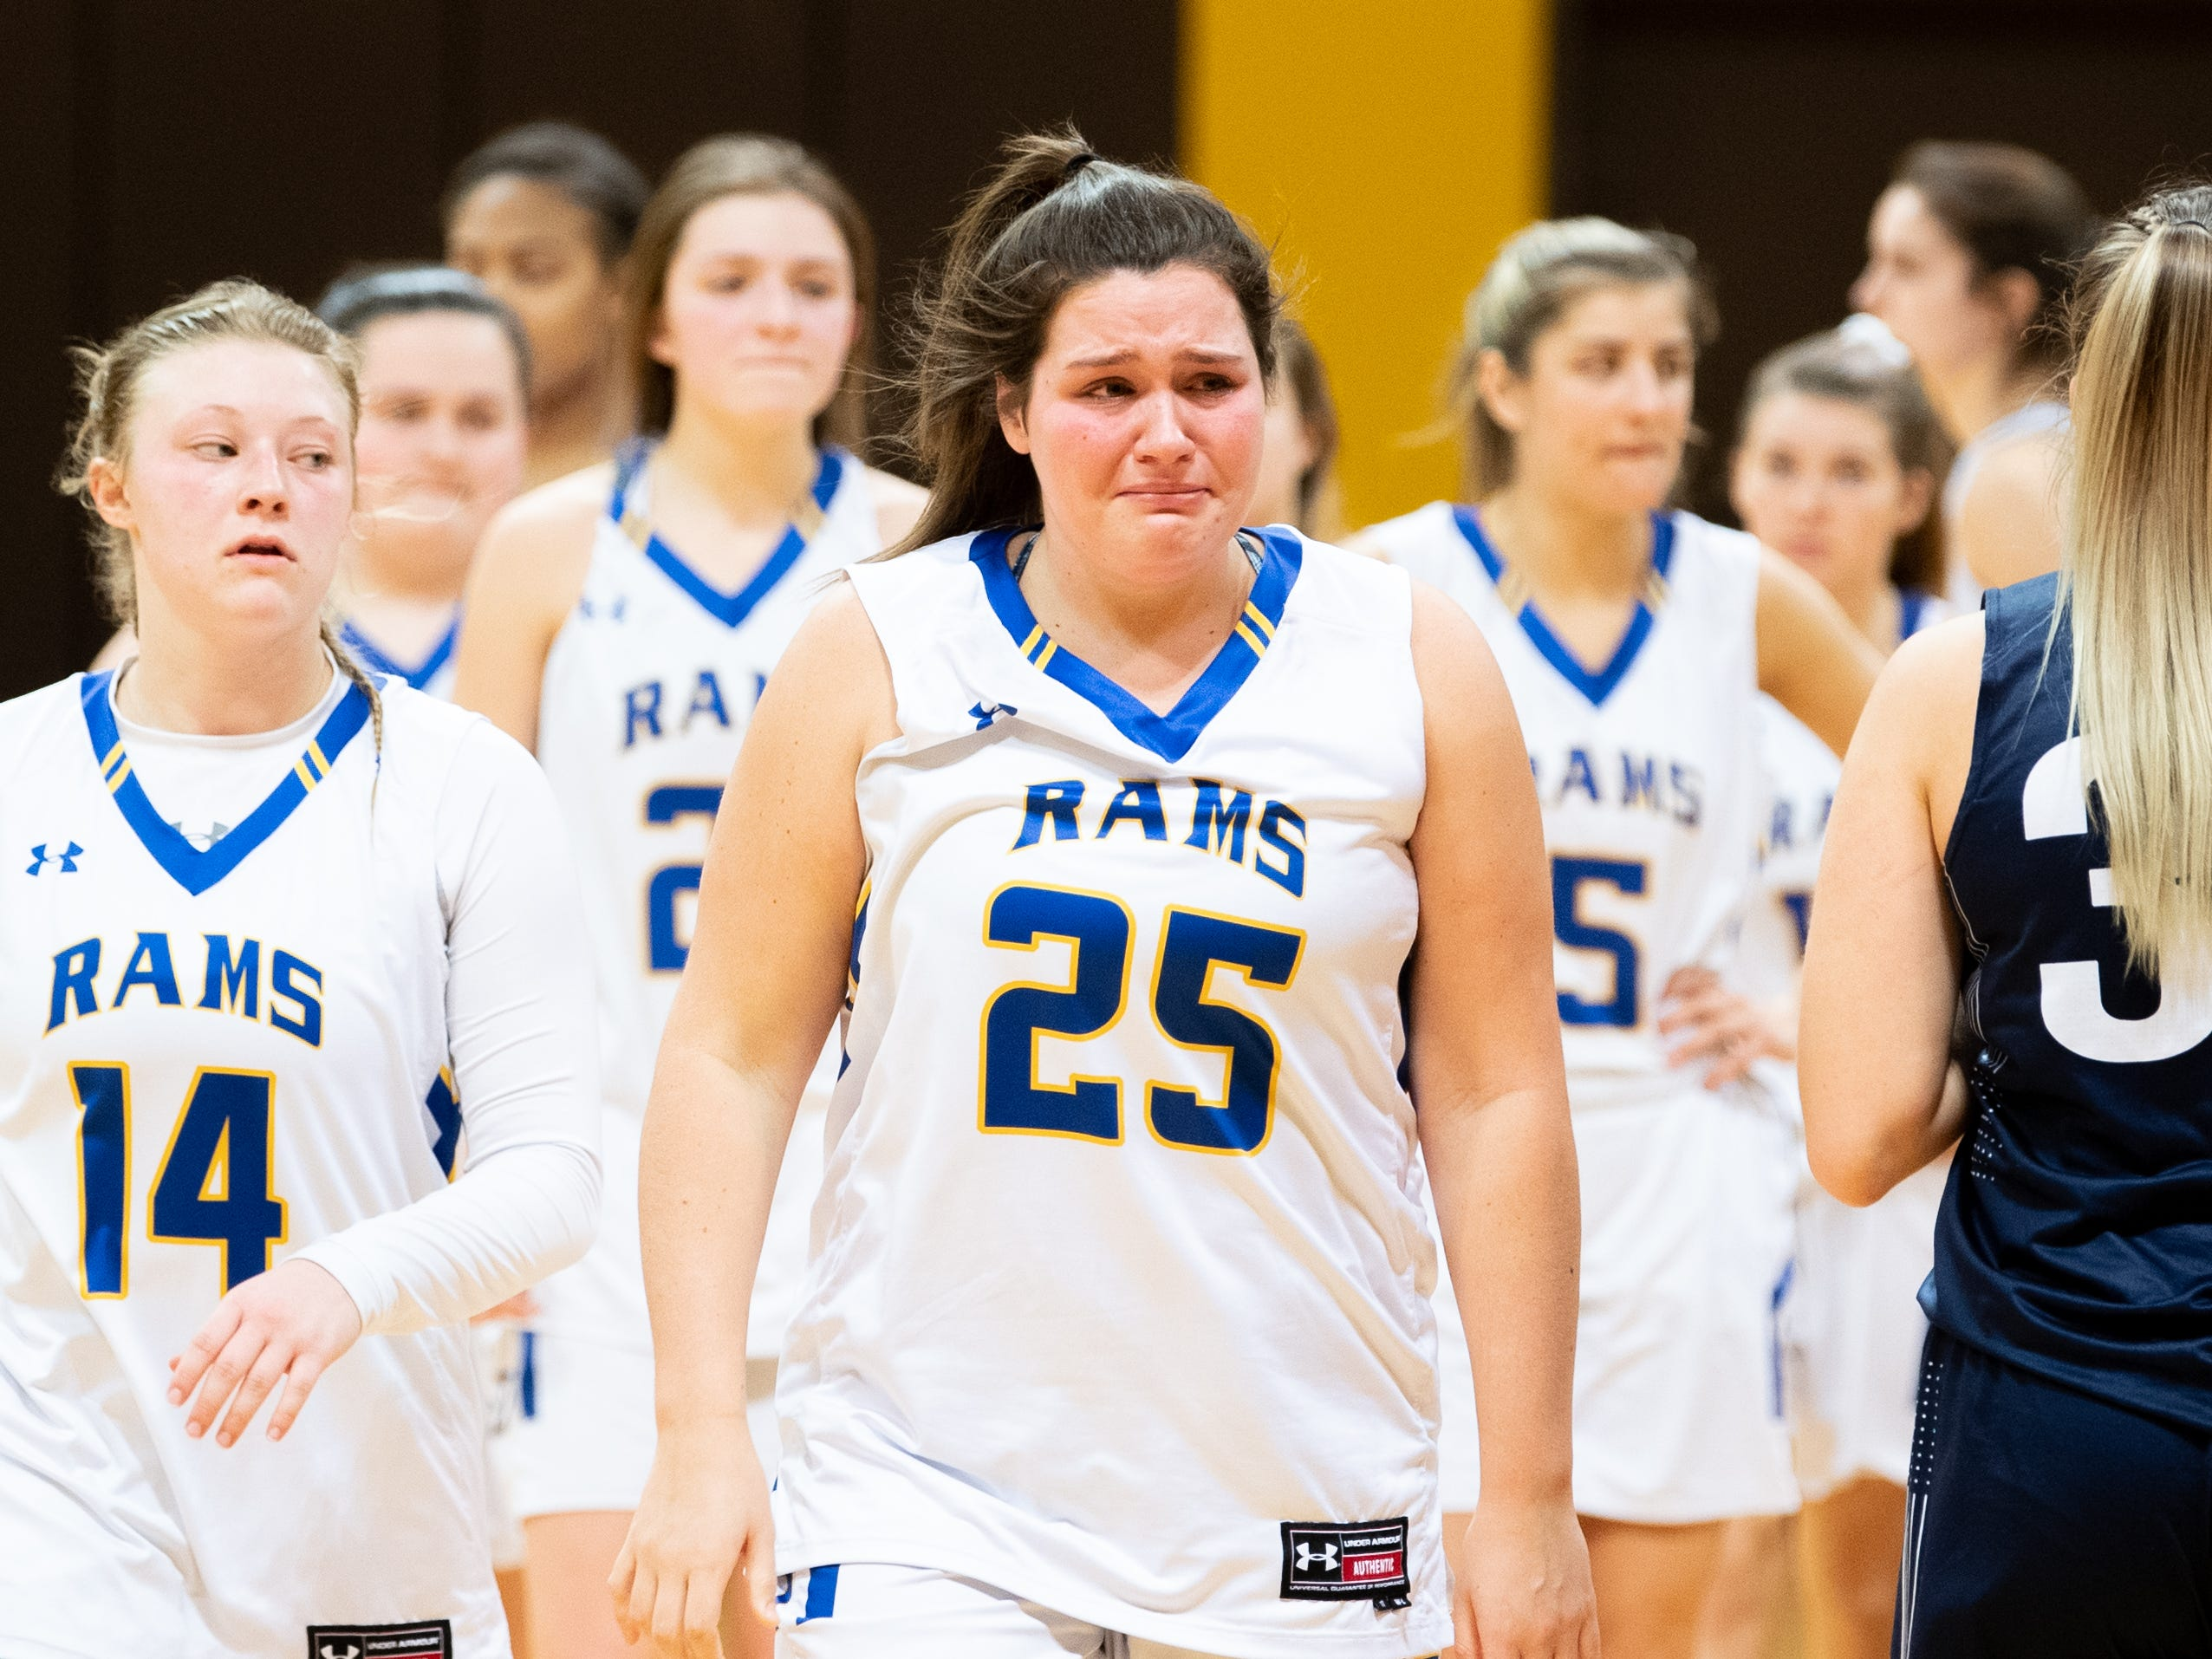 Kennard-Dale is overcome with emotions after losing to Mifflinburg Area in the PIAA second round girls' basketball game, March 13, 2019 at Milton Hershey School. The Rams fell to the Wildcats 51 to 45.